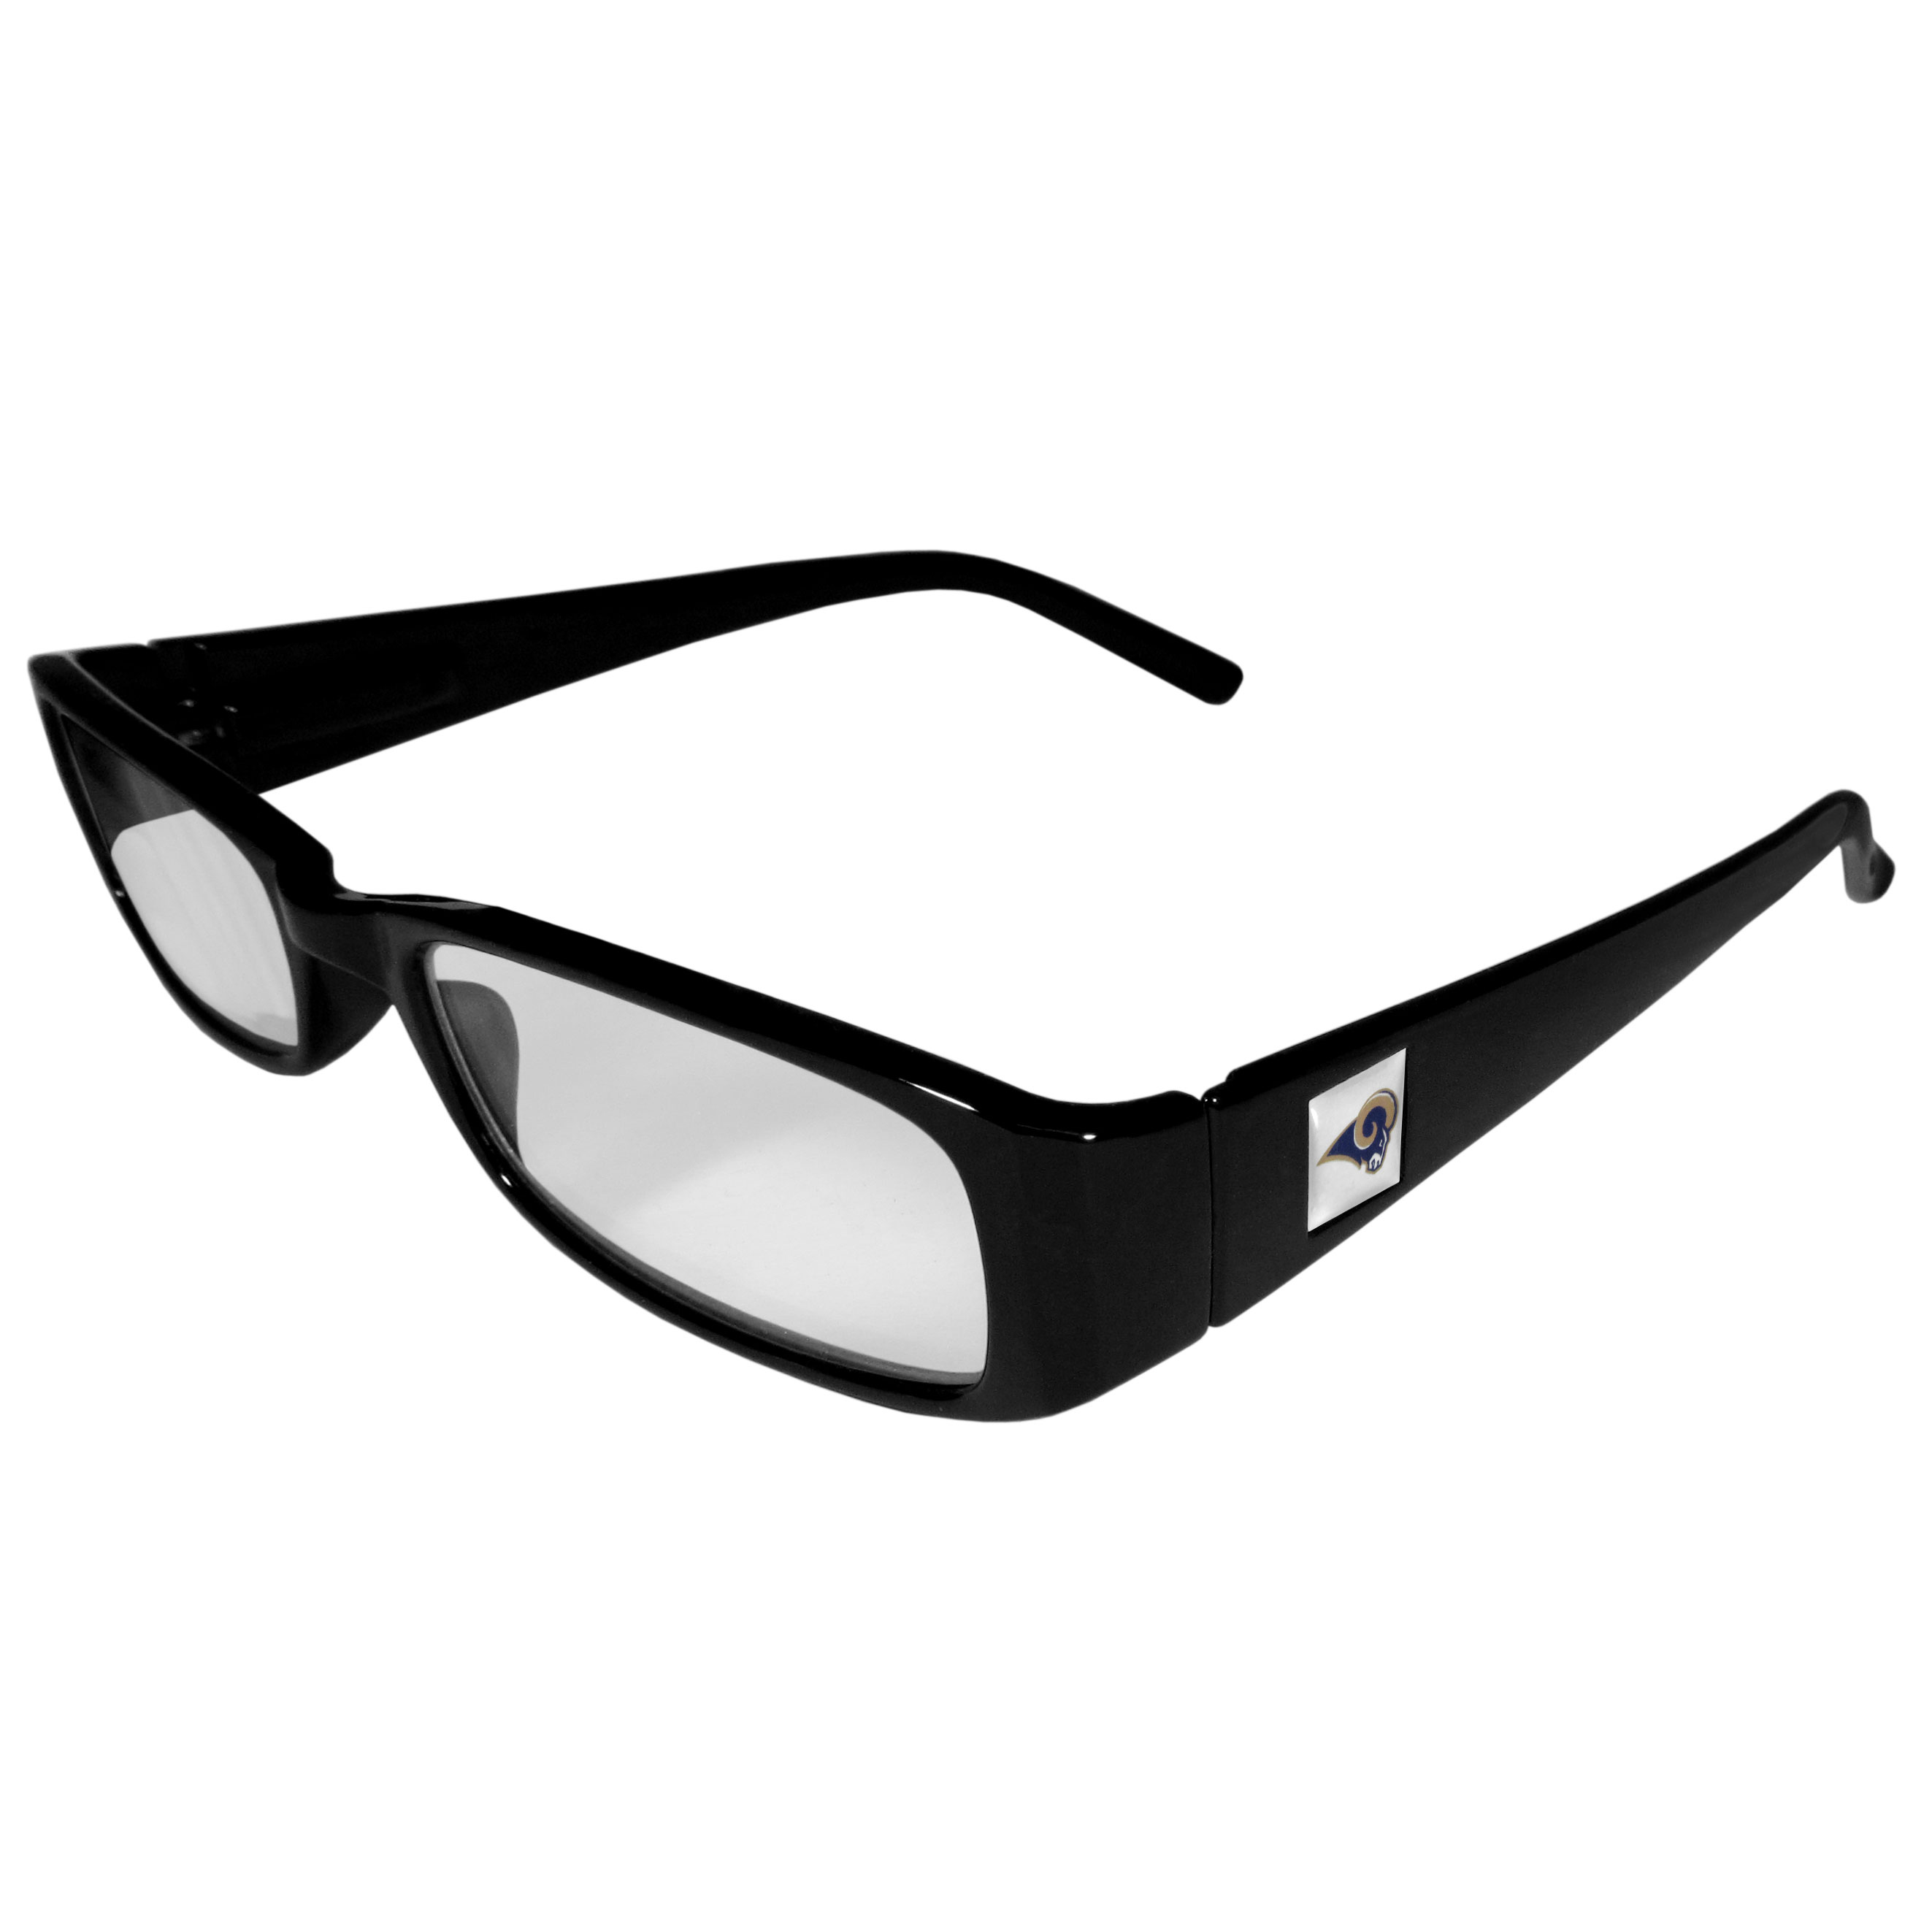 St. Louis Rams Black Reading Glasses +1.25 - Our St. Louis Rams reading glasses are 5.25 inches wide and feature the team logo on each arm. Magnification Power 1.25